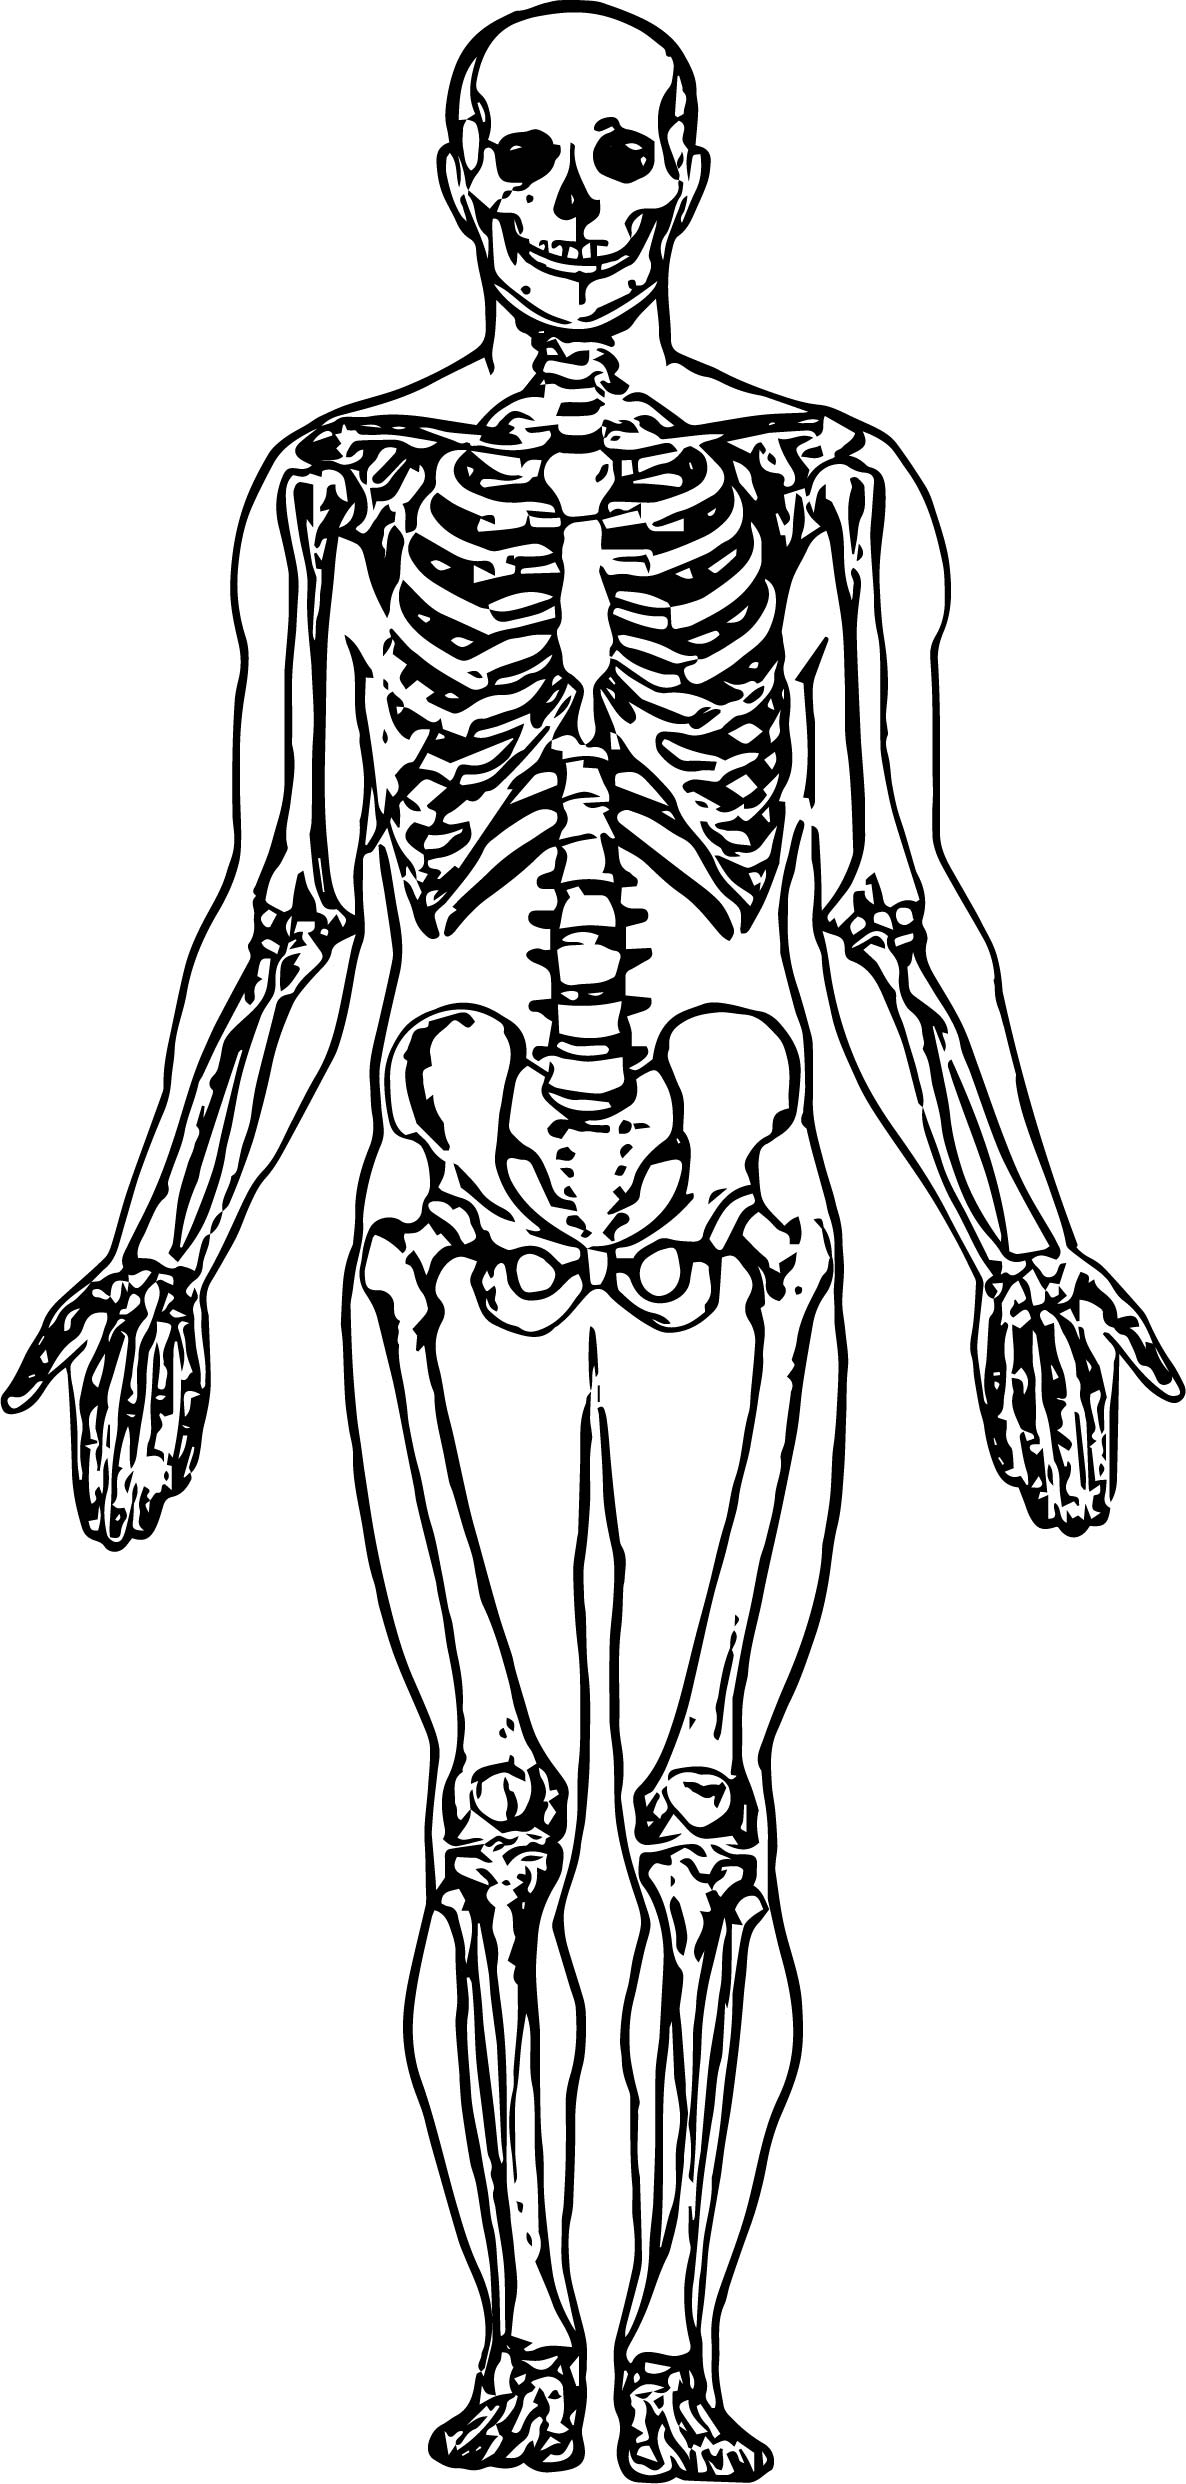 coloring skeleton pictures skeleton coloring pages to download and print for free coloring skeleton pictures